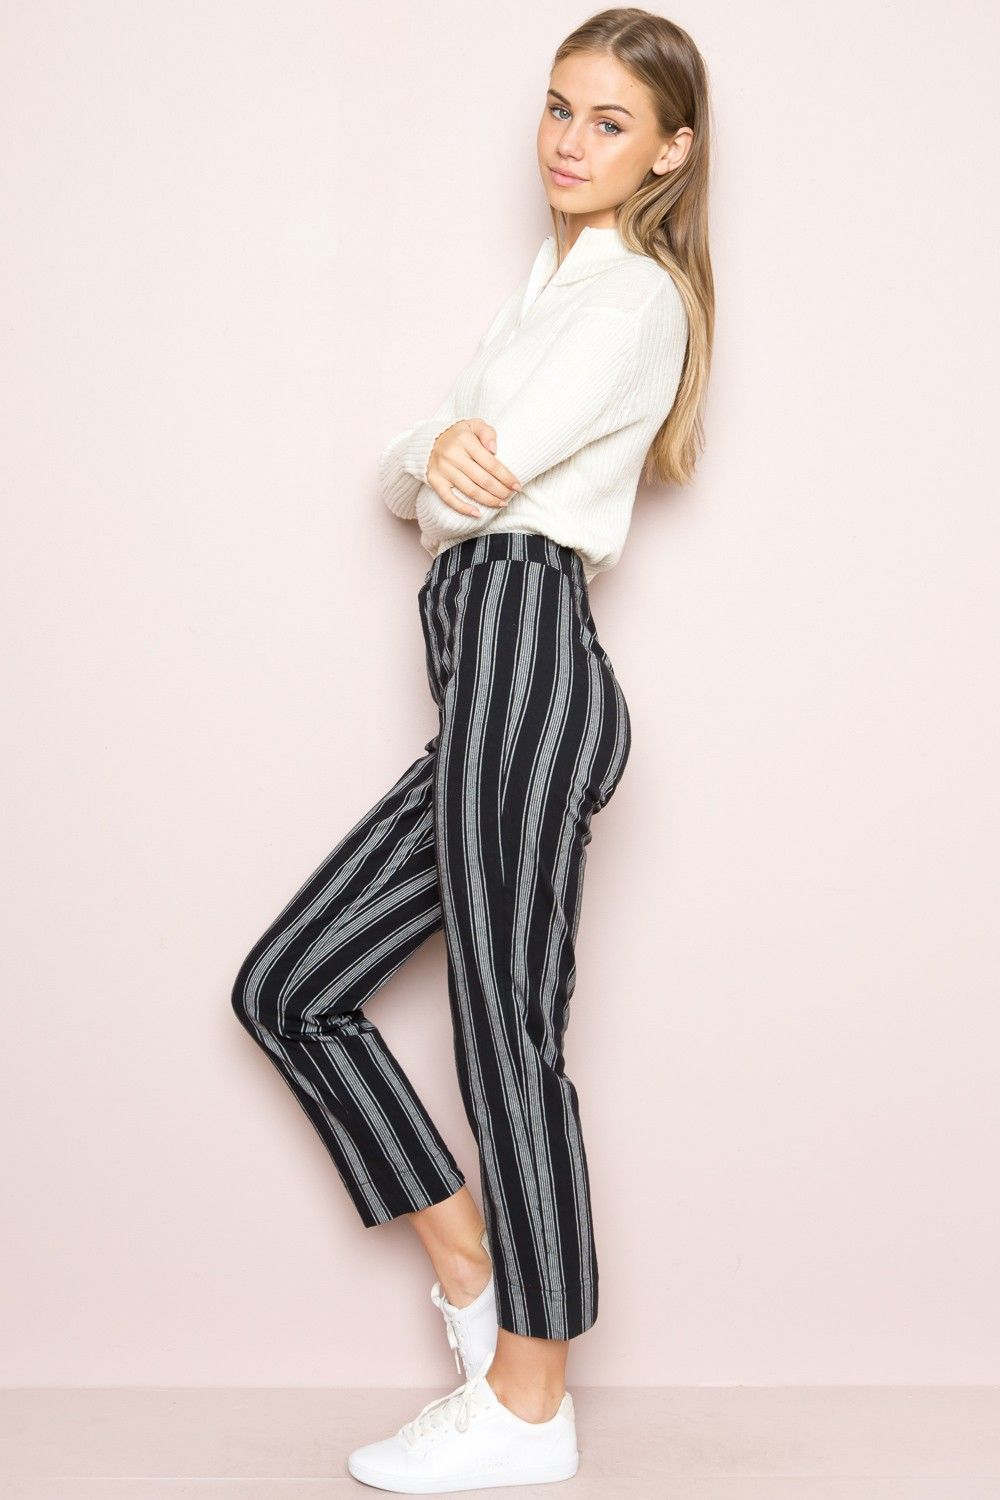 Tilden Pants - Bottoms - Clothing | Outfits in 2019 ...